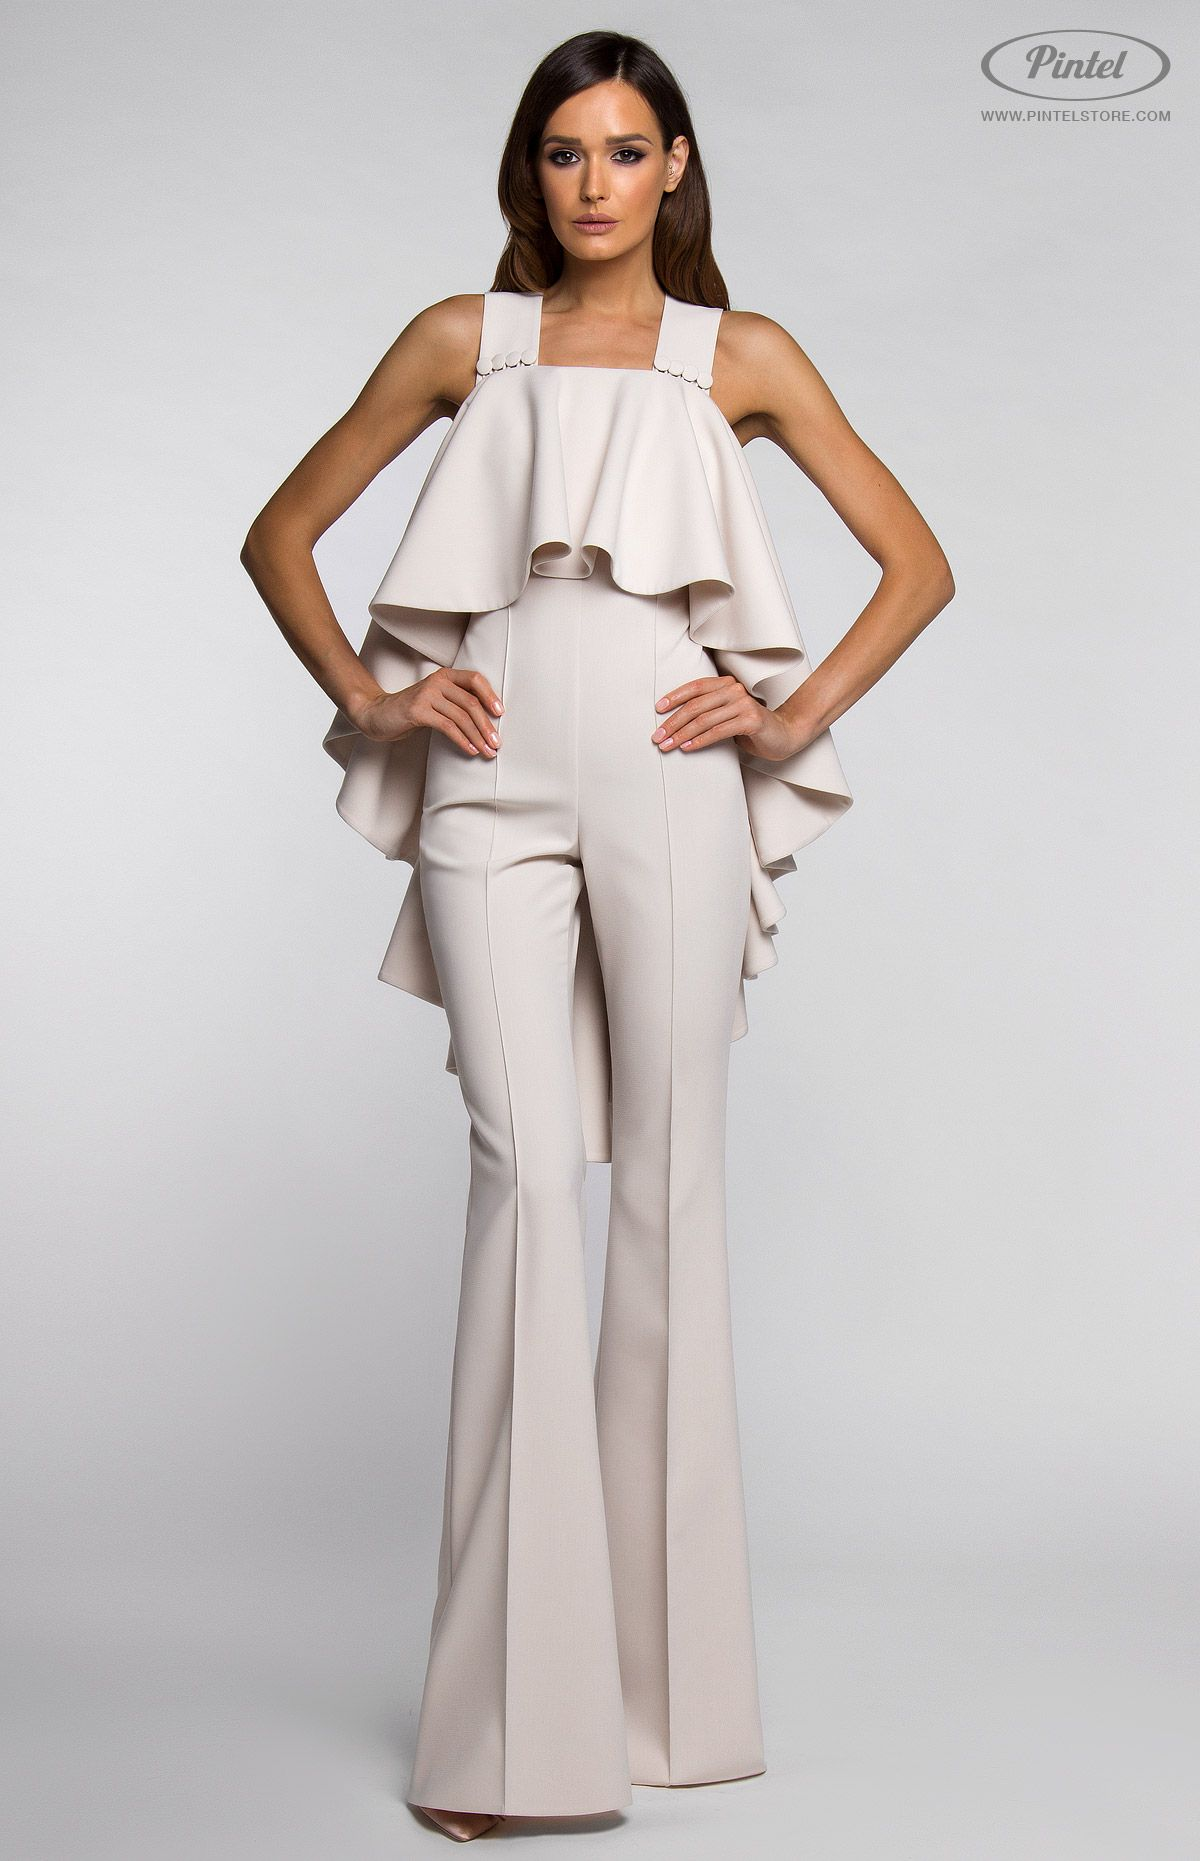 cf7c048e4041 Slim-fit sleeveless jumpsuit with wide bottom flounce. Open back with  crossed straps and button closure in front. Hidden side zip closure.  Without pockets.